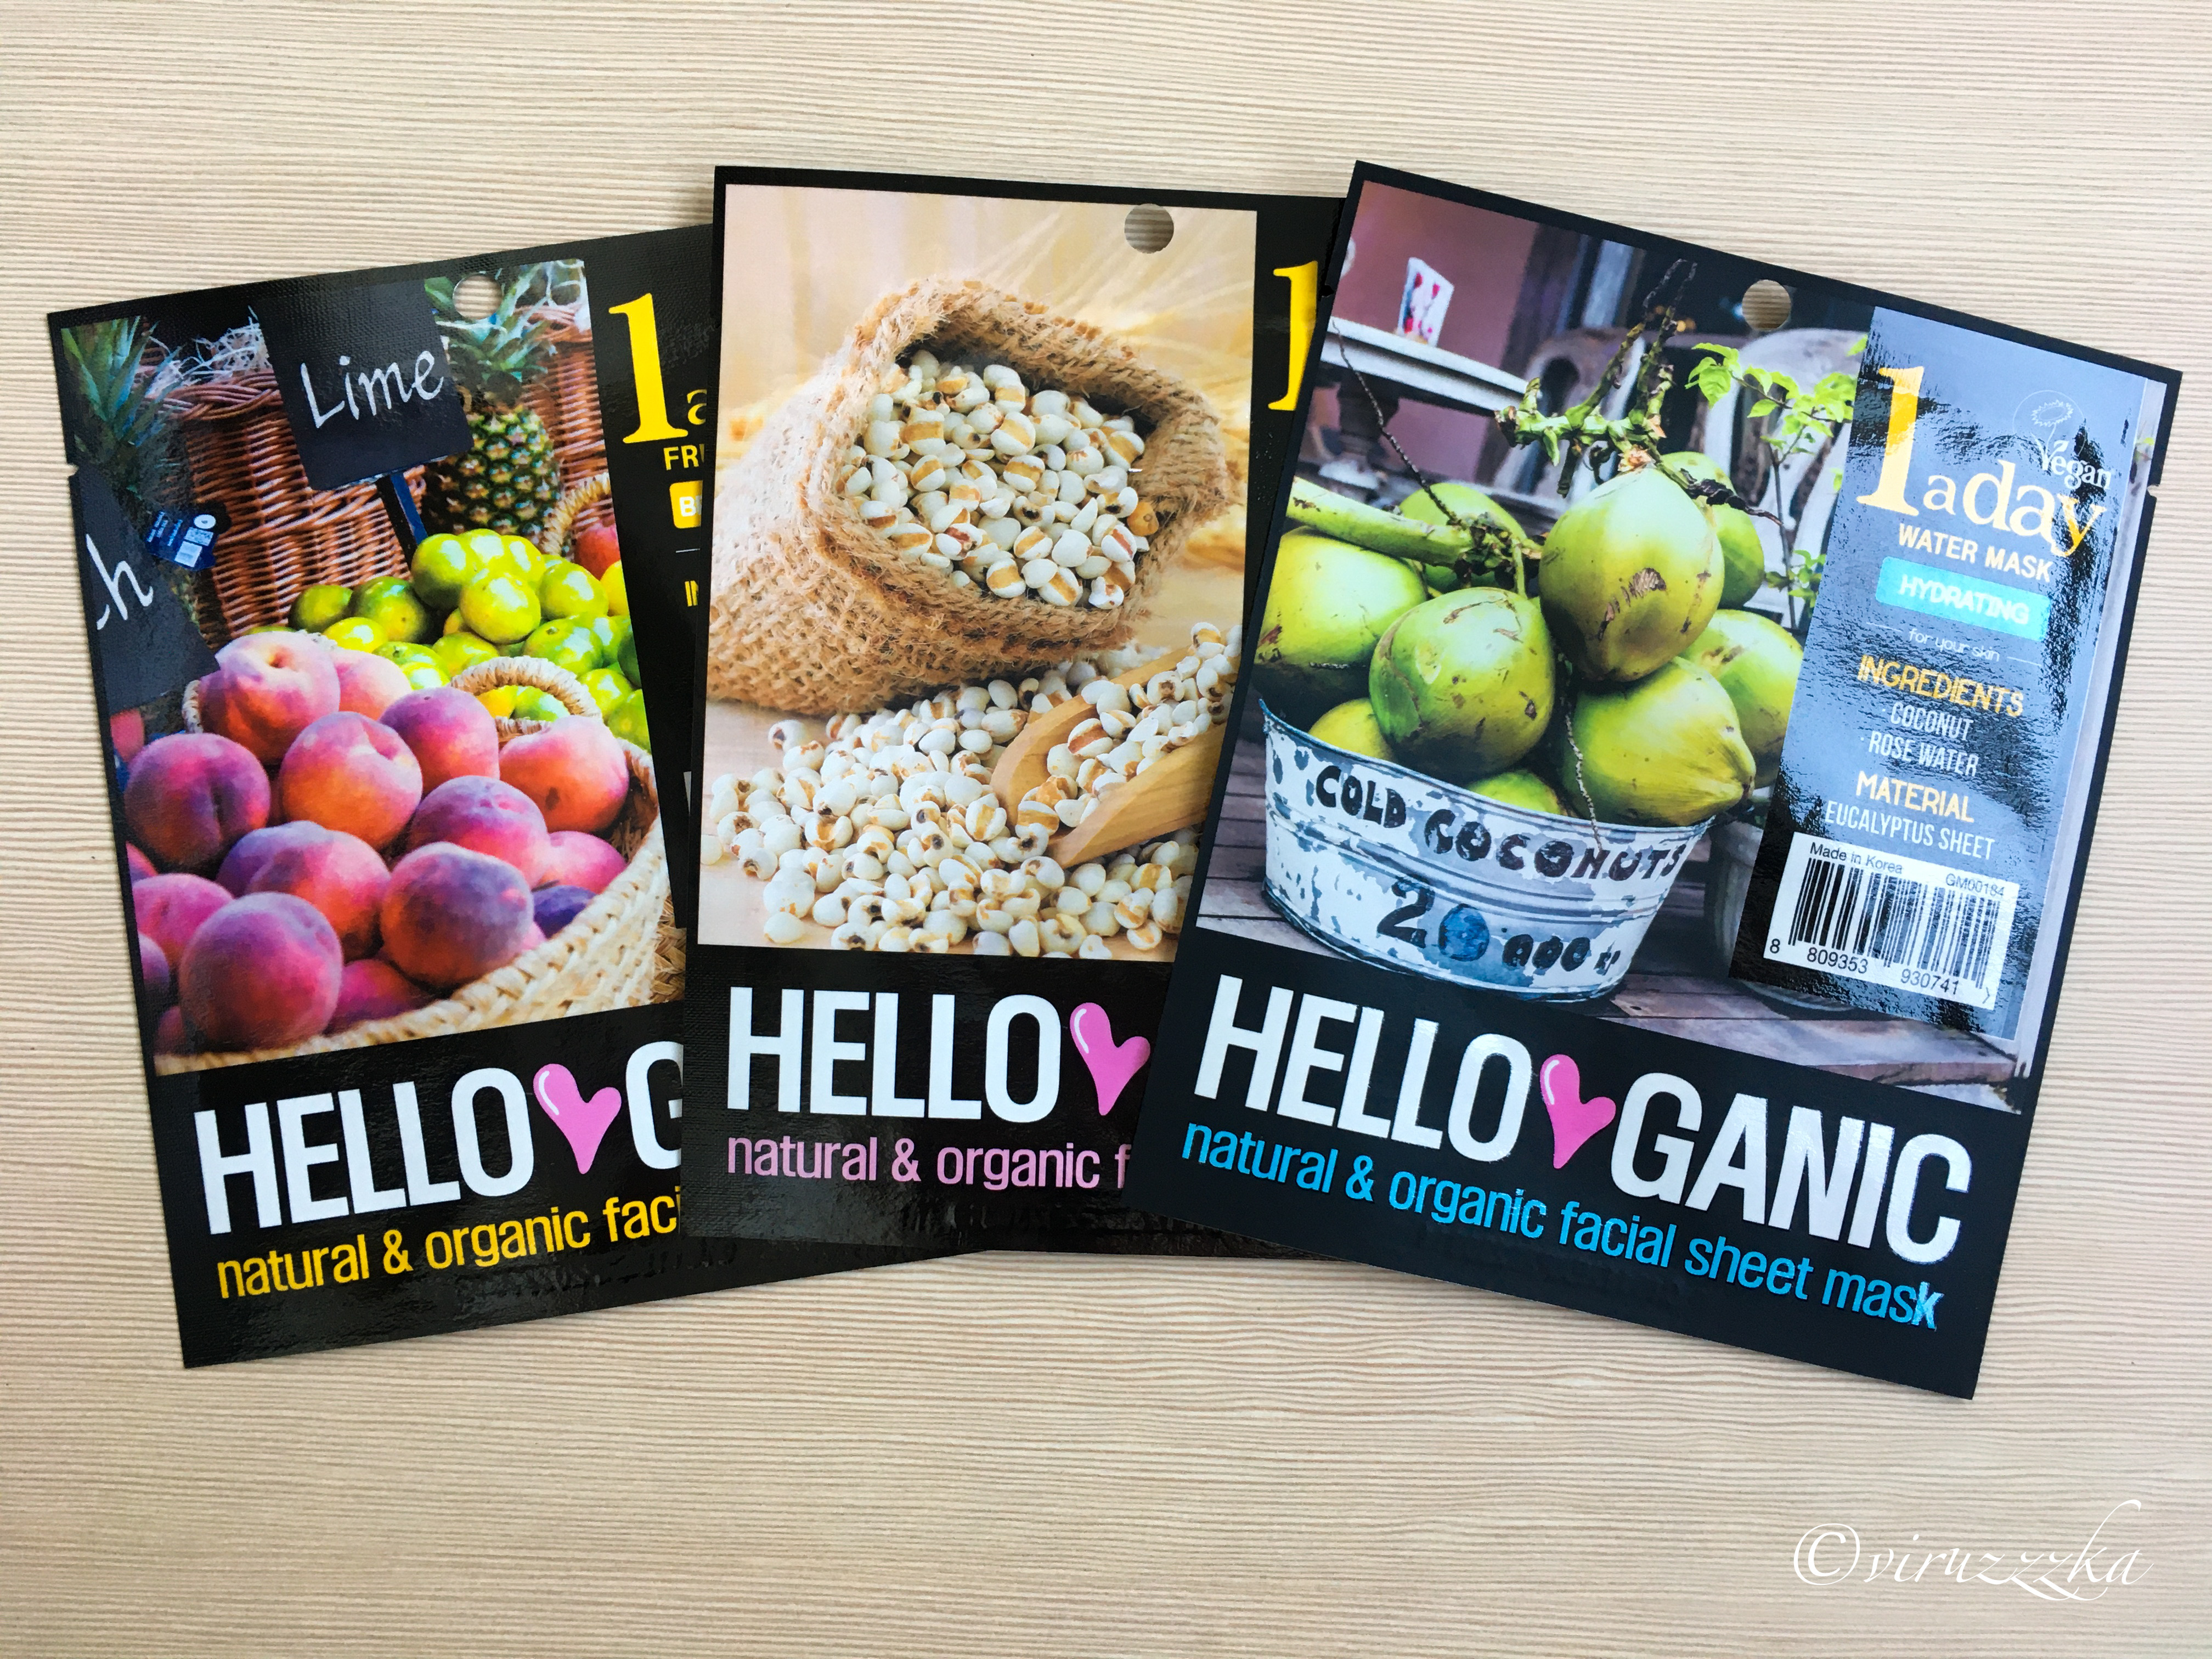 HELLO GANIC One a Day Sheet Mask Set Review